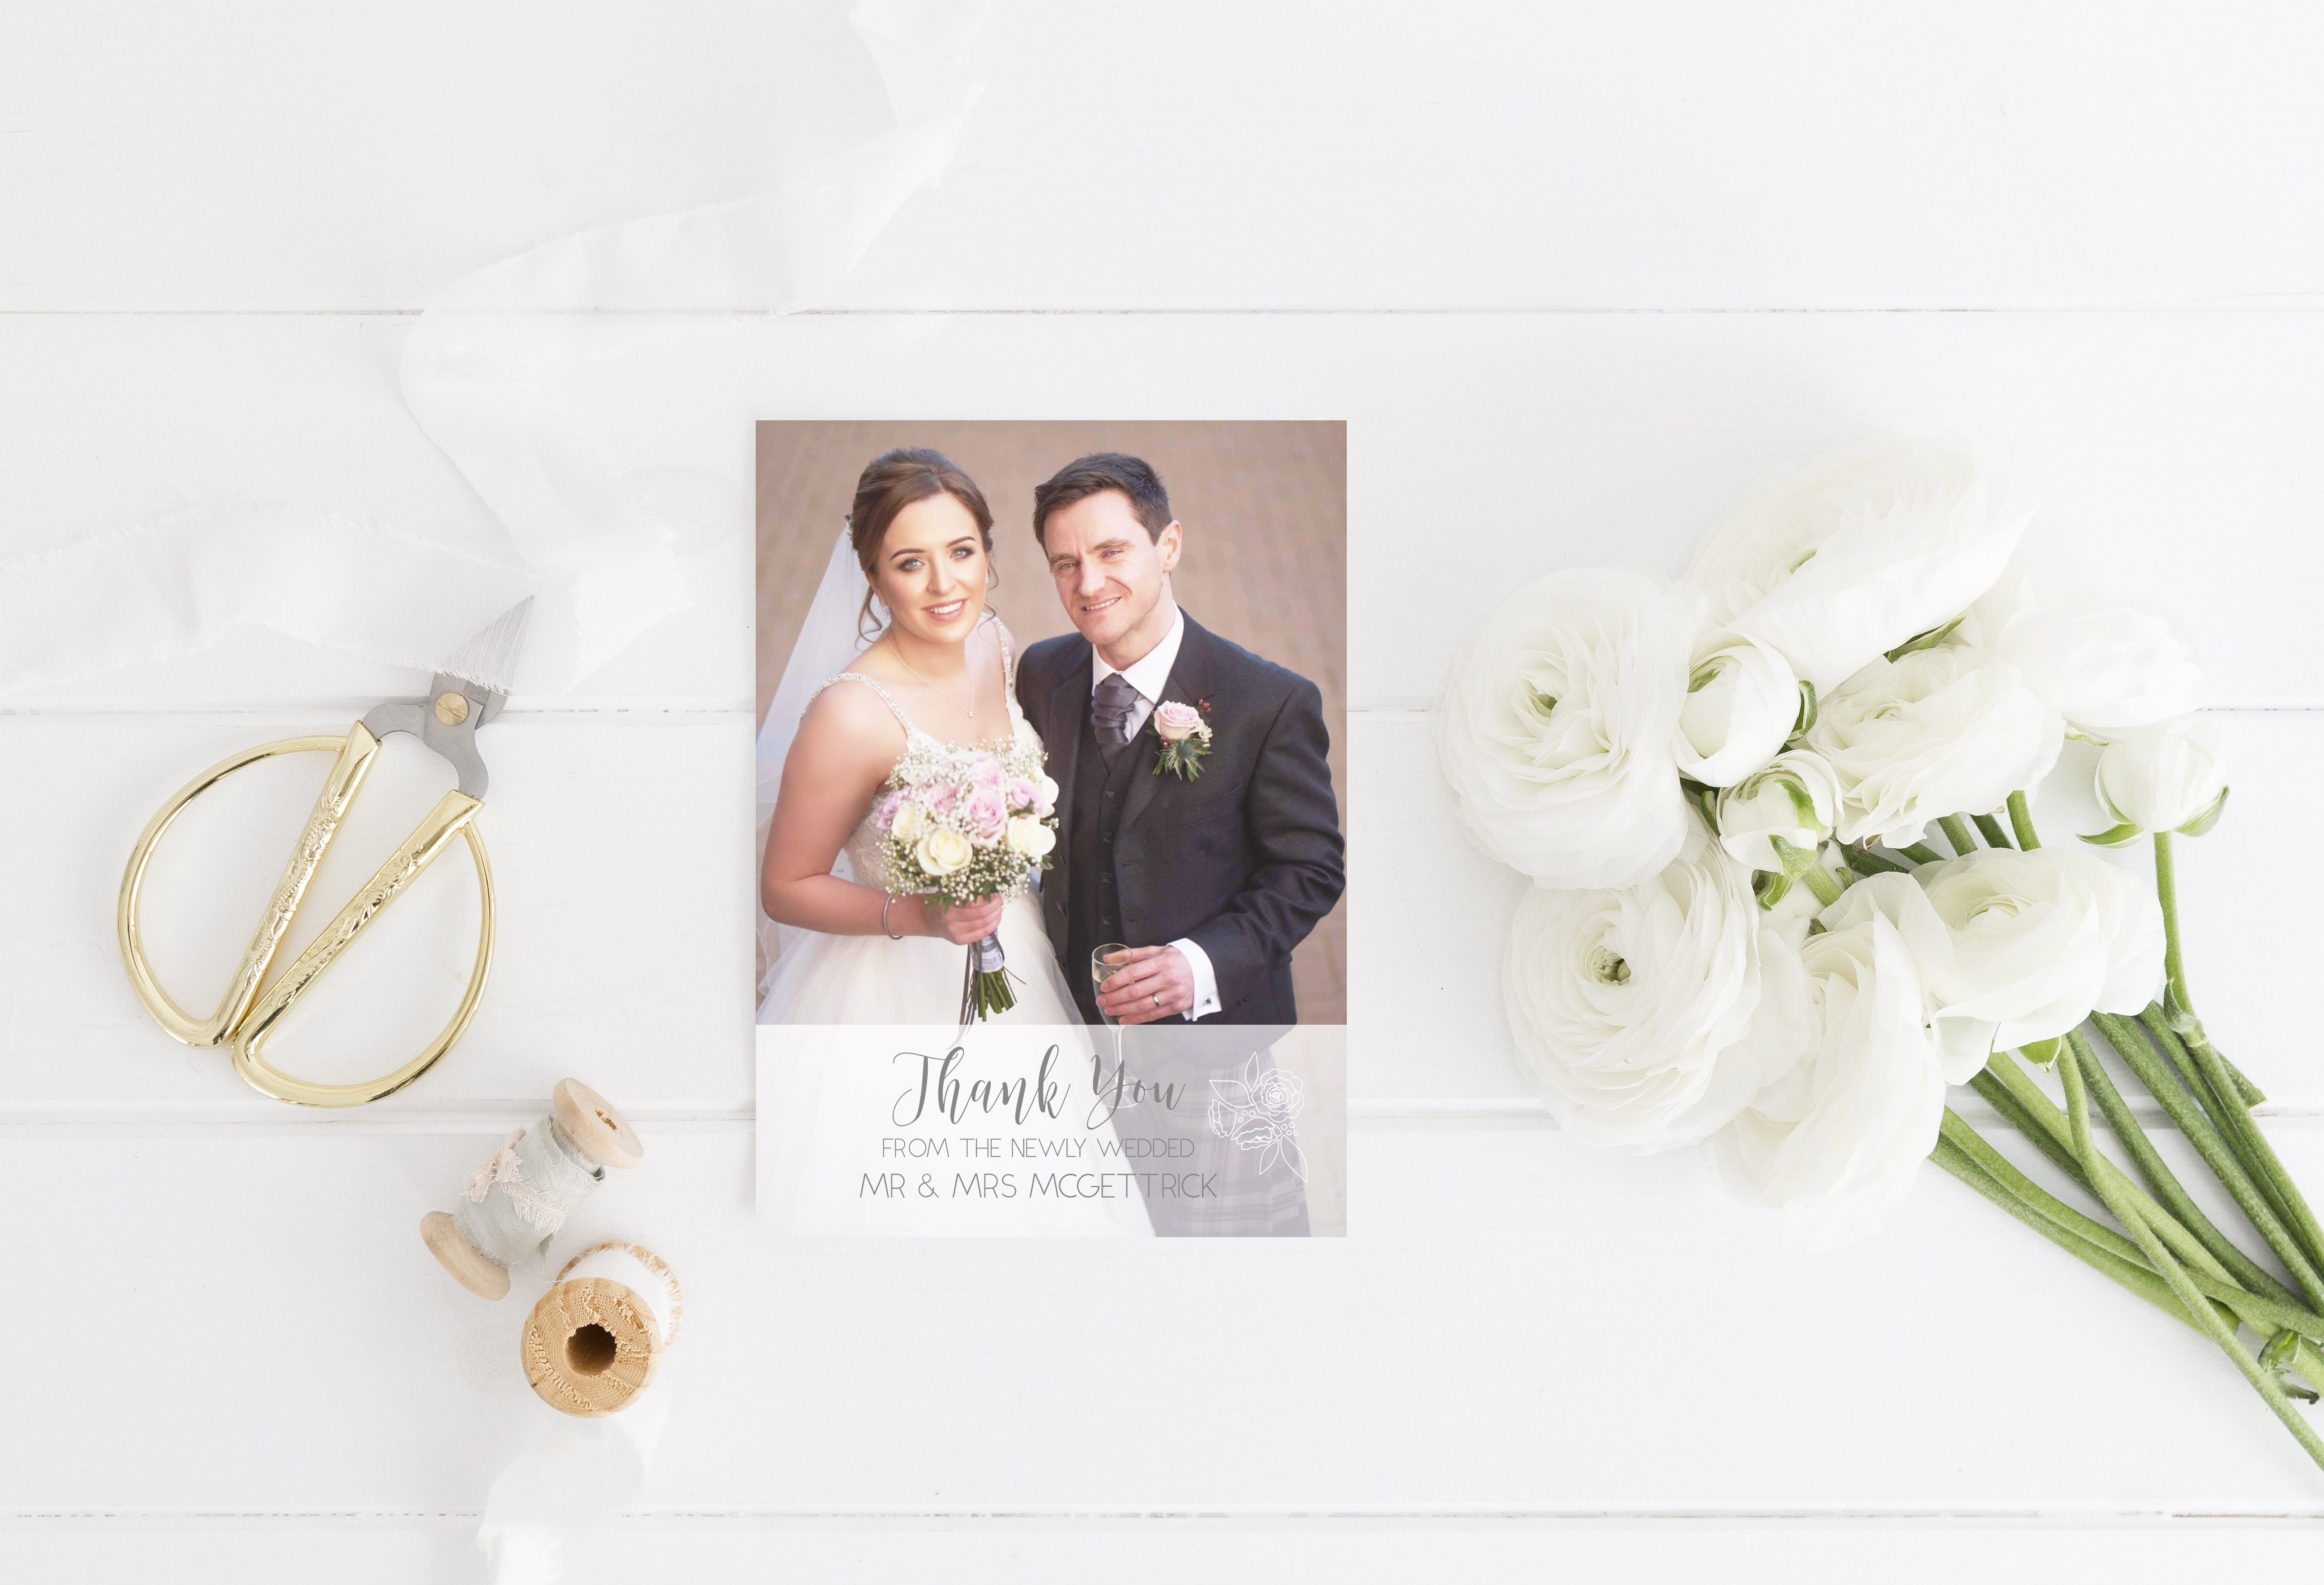 Thank You Card Wedding Stationery White Flowers